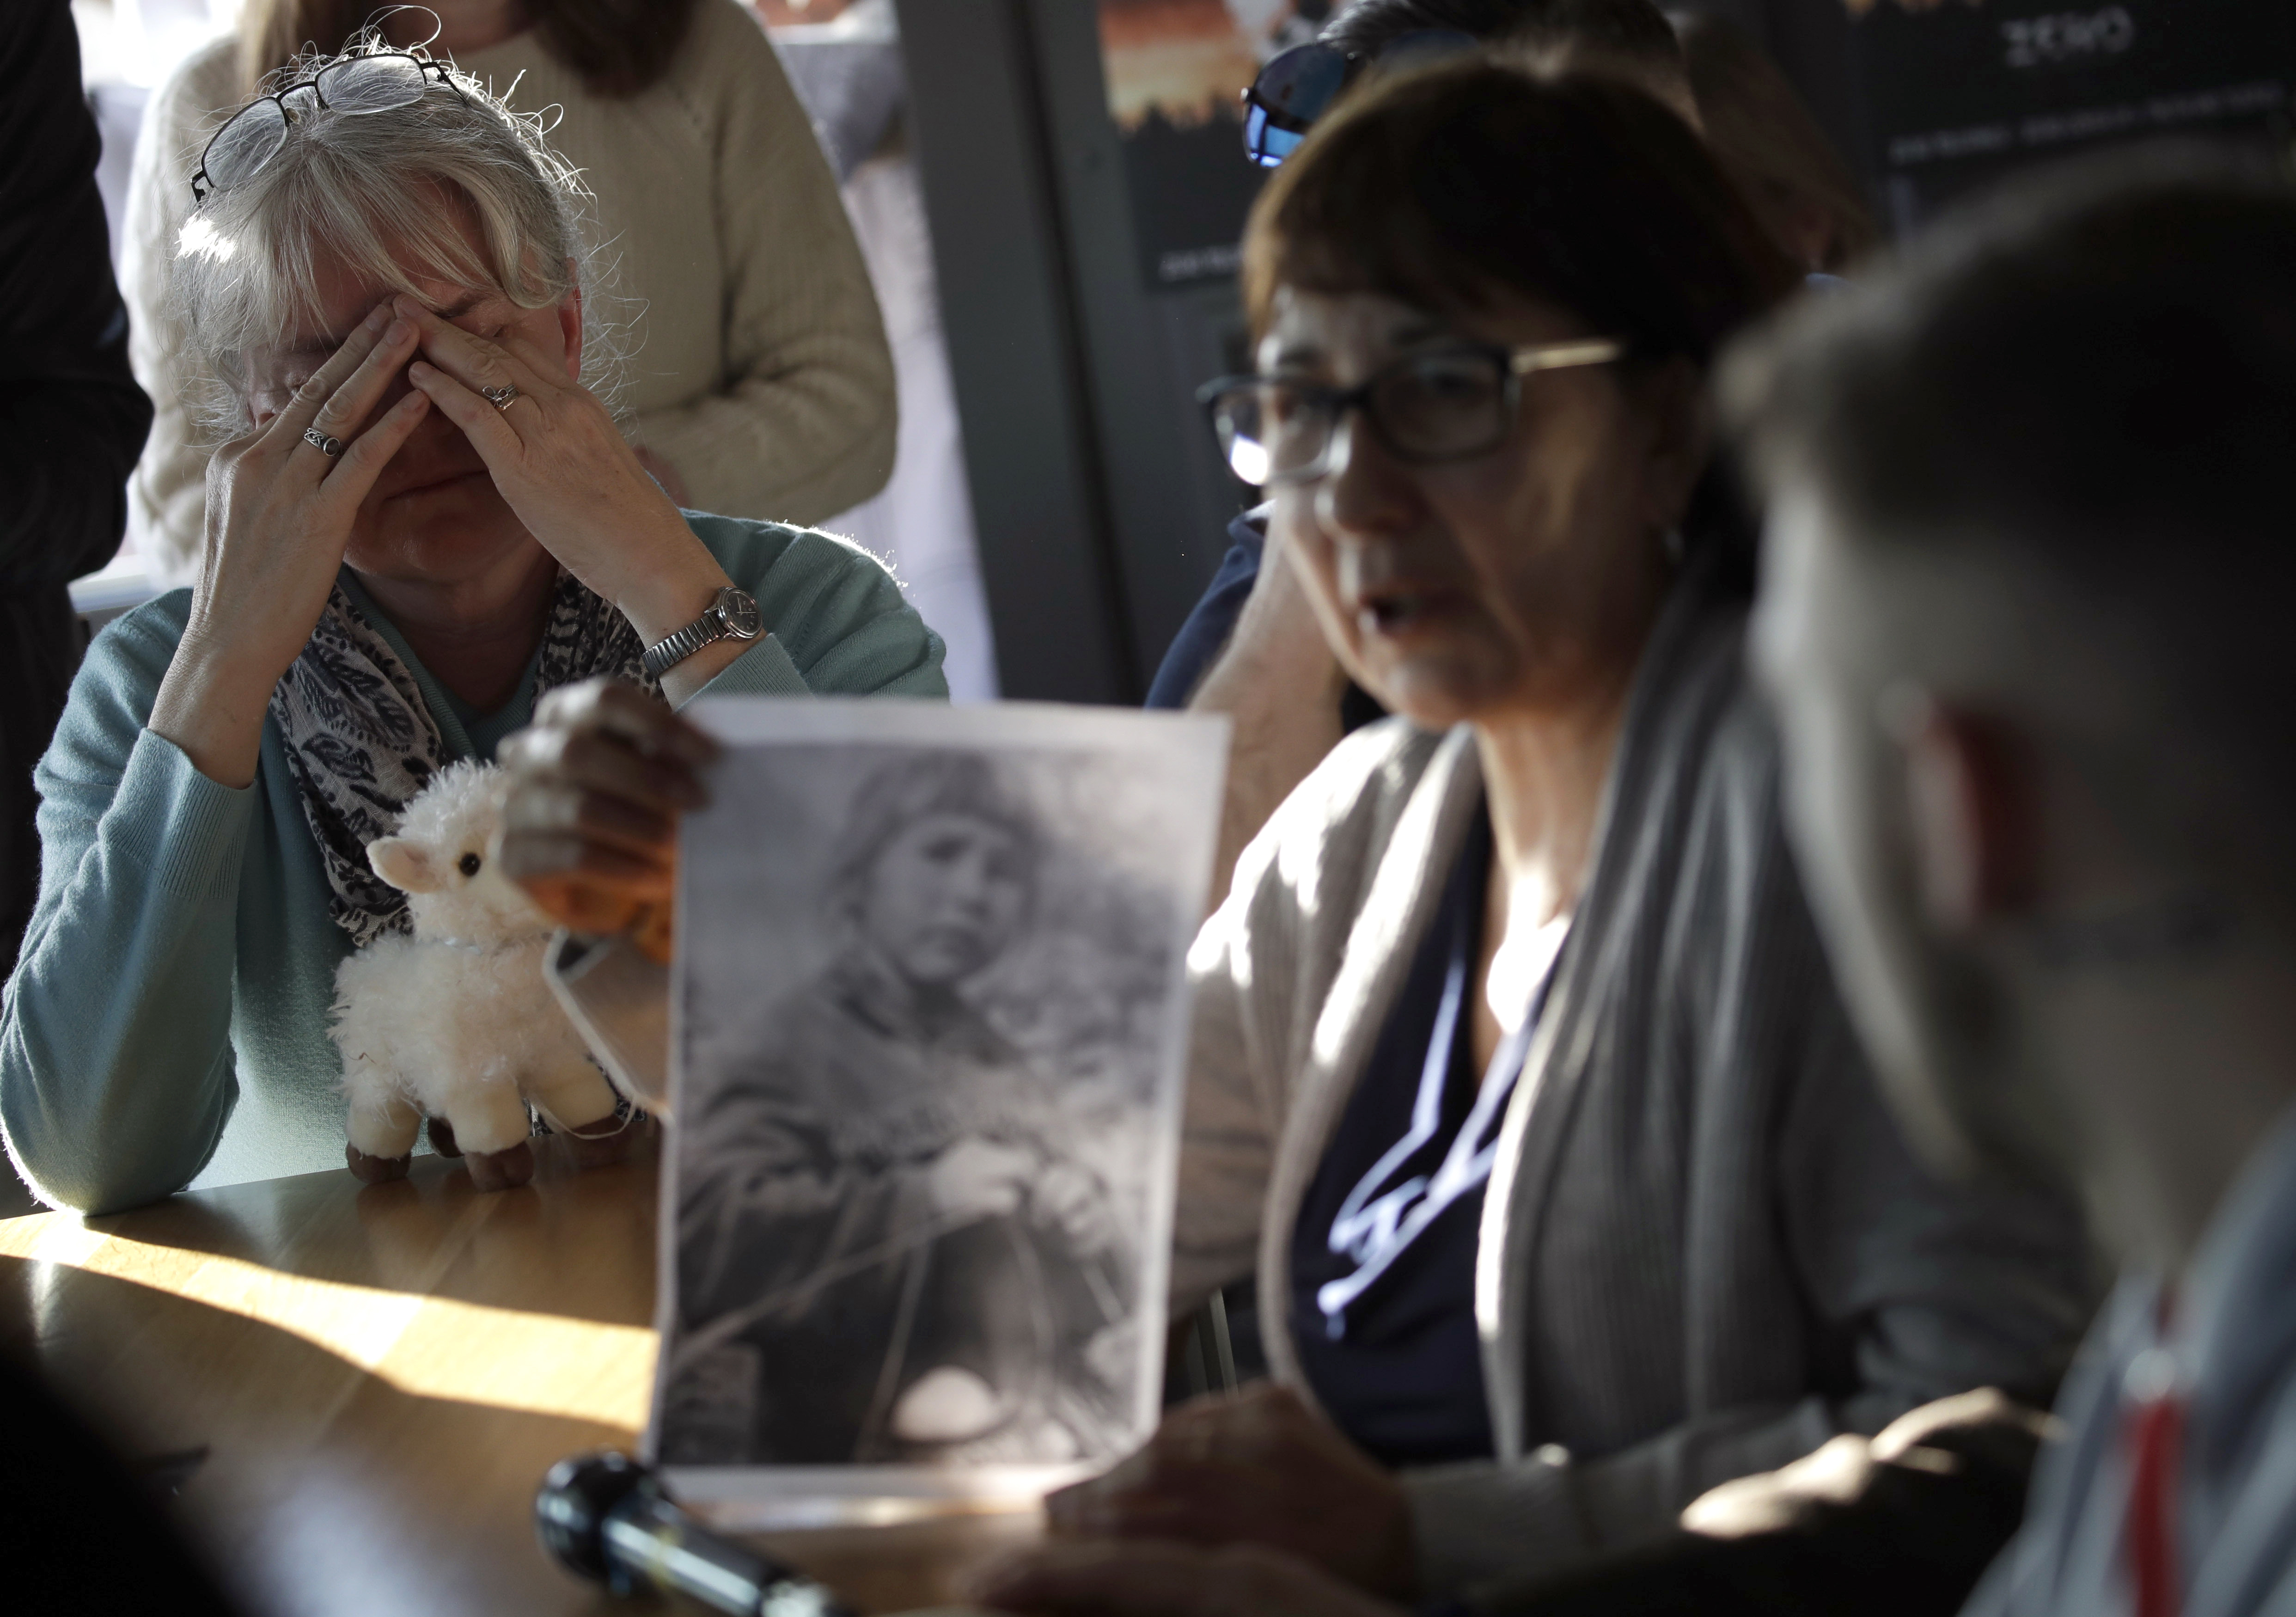 Sex abuse survivor Bernadette Howell, from Canada, left, cries as she listens to Evelyn Korkamaz, another survivor, during a press conference of members of the ECA (Ending Clergy Abuse), in Rome, Feb. 22, 2019.